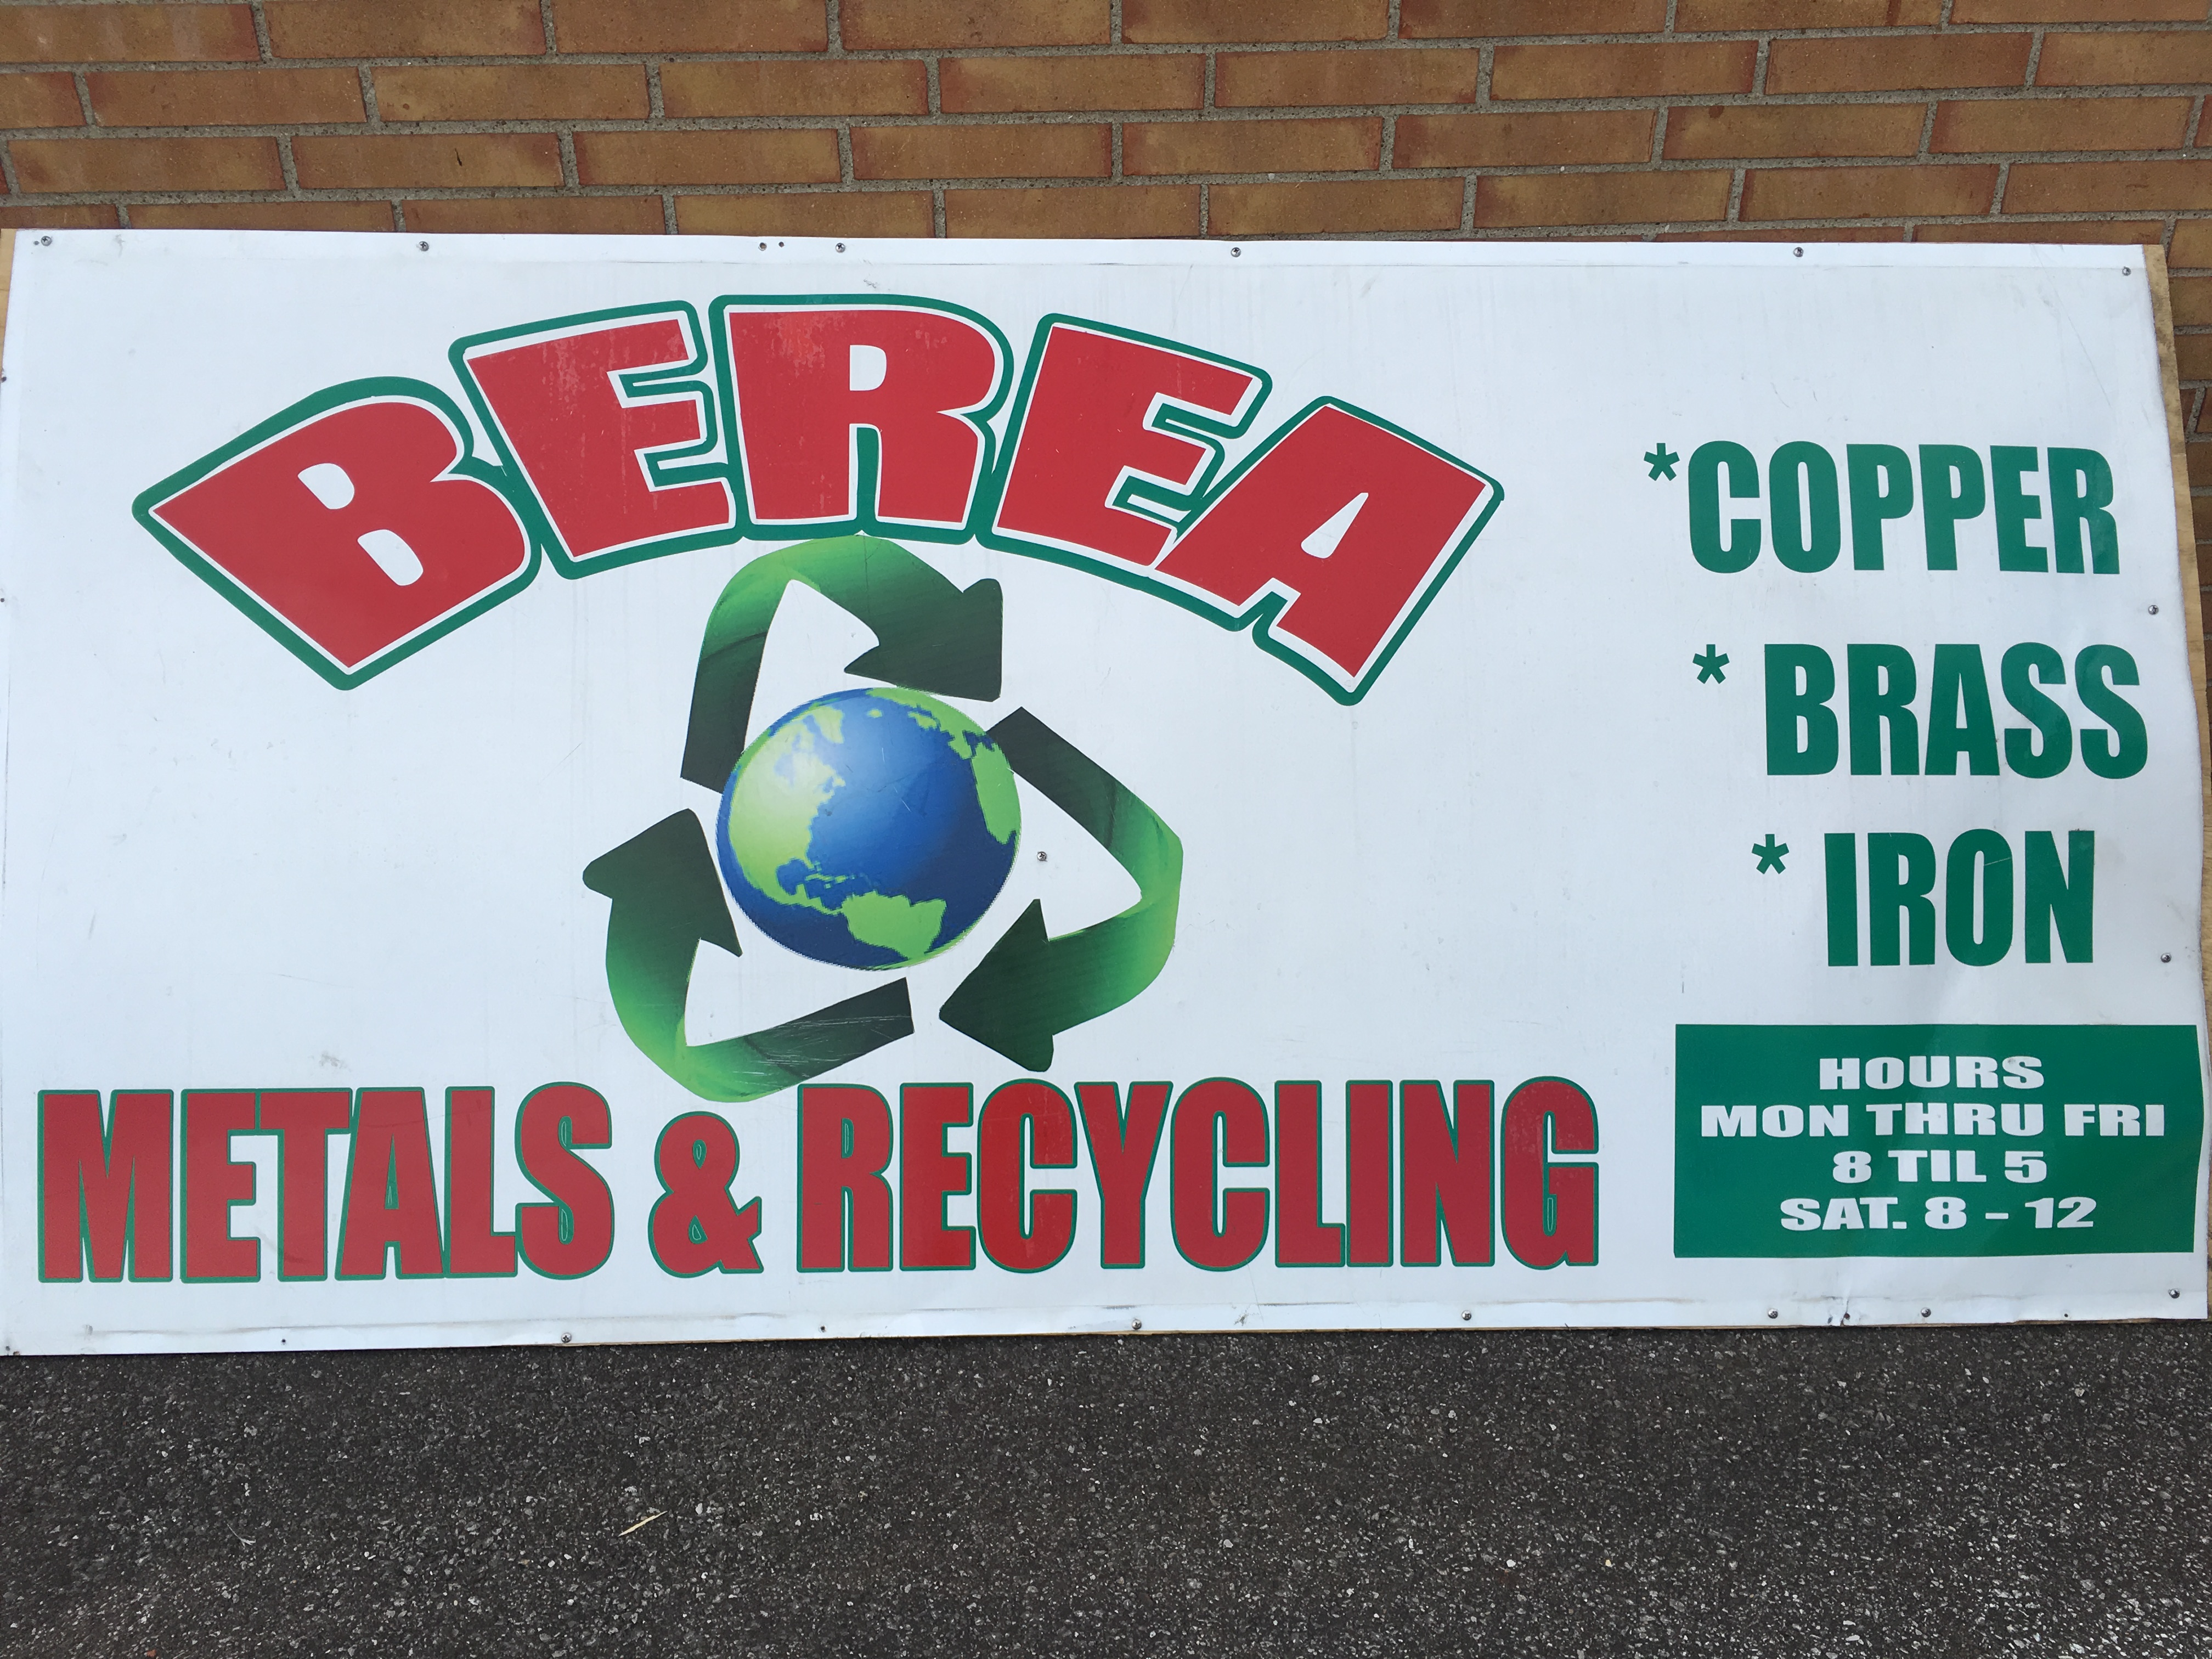 Berea Metals and Recycling